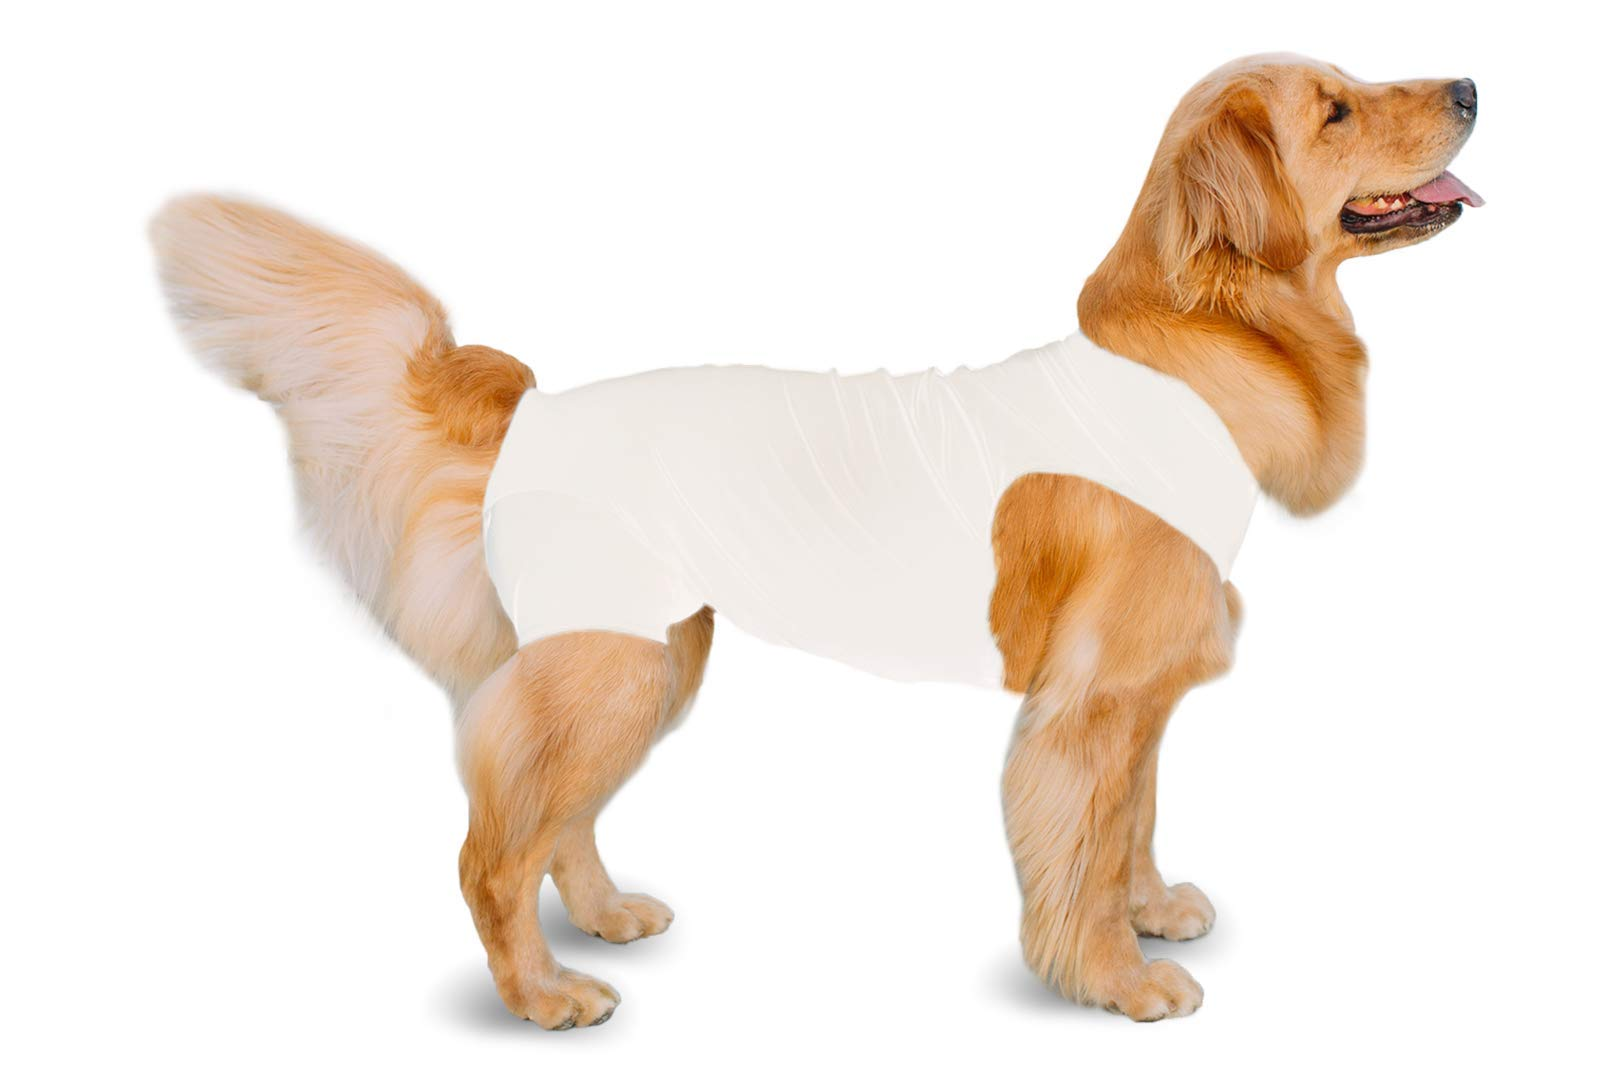 Shed Defender Recovery Dog & Cat Onesie – Seen on Shark Tank, After Surgery Abdominal Wound and Hot Spot Protection Suit, Anti-Licking Medical Cone E-Collar Alternative, Reduce Anxiety, Eco-Friendly